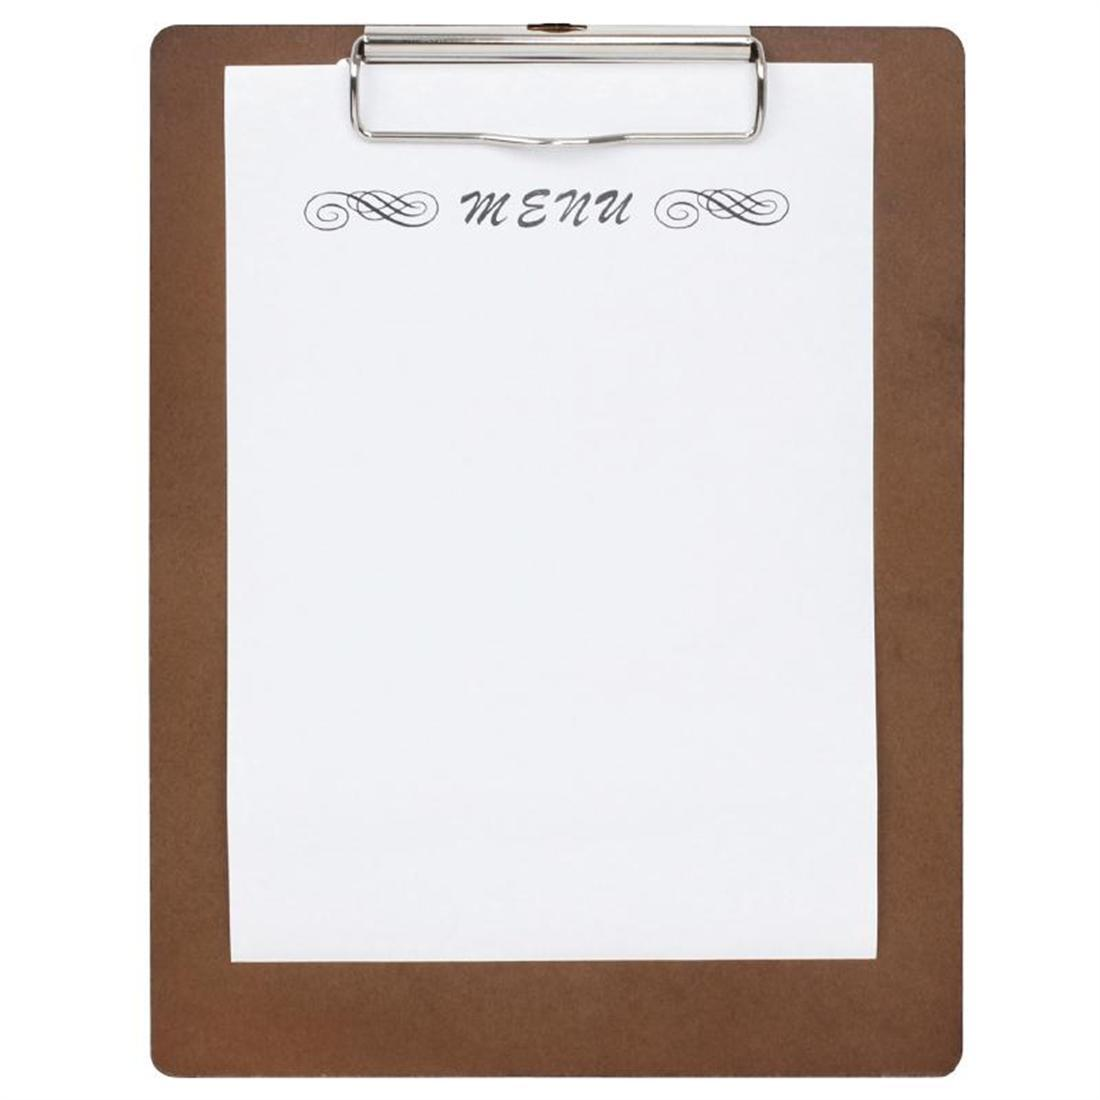 Special Offer Wooden Menu Presentation Clipboard A5 x10